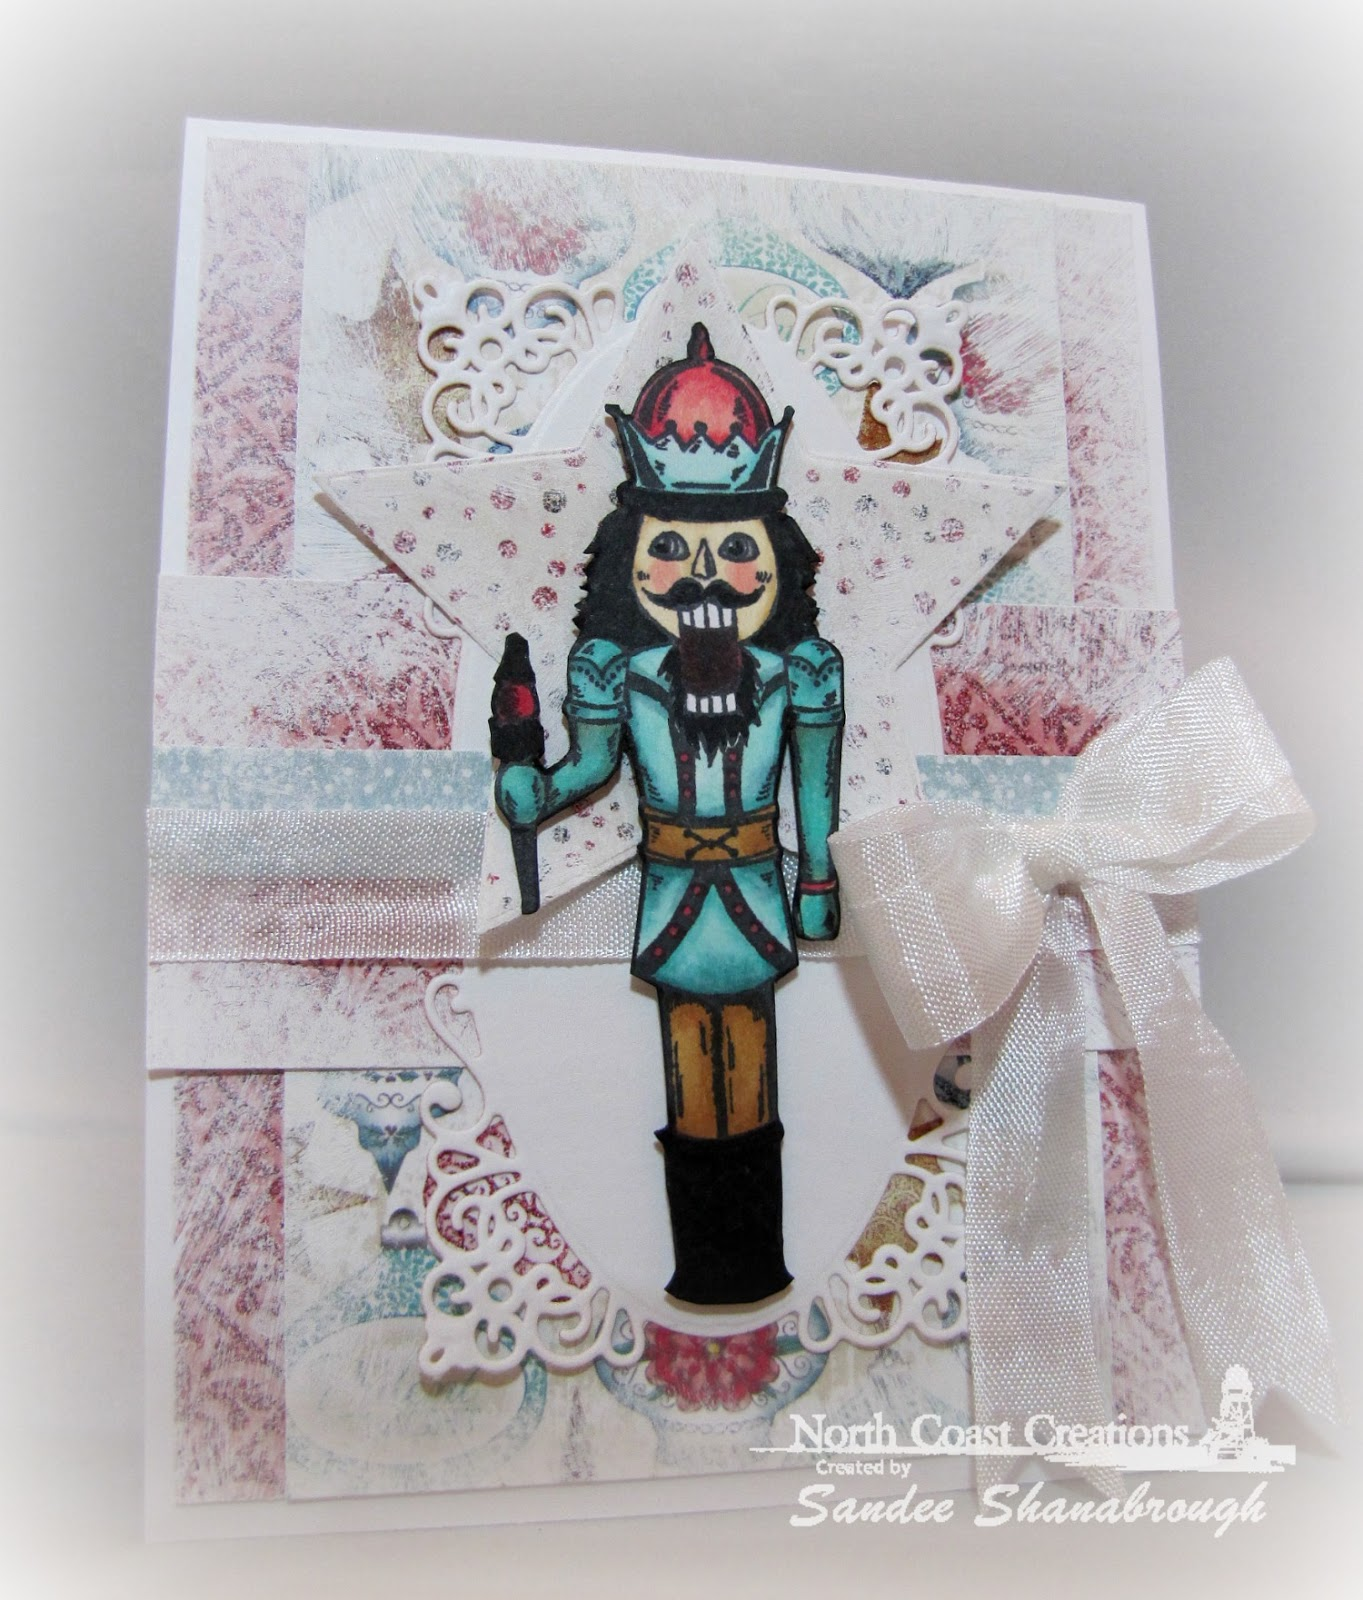 Stamps - North Coast Creations Nutcracker, ODBD Christmas Paper Collection 2014, ODBD Sparkling Stars Dies